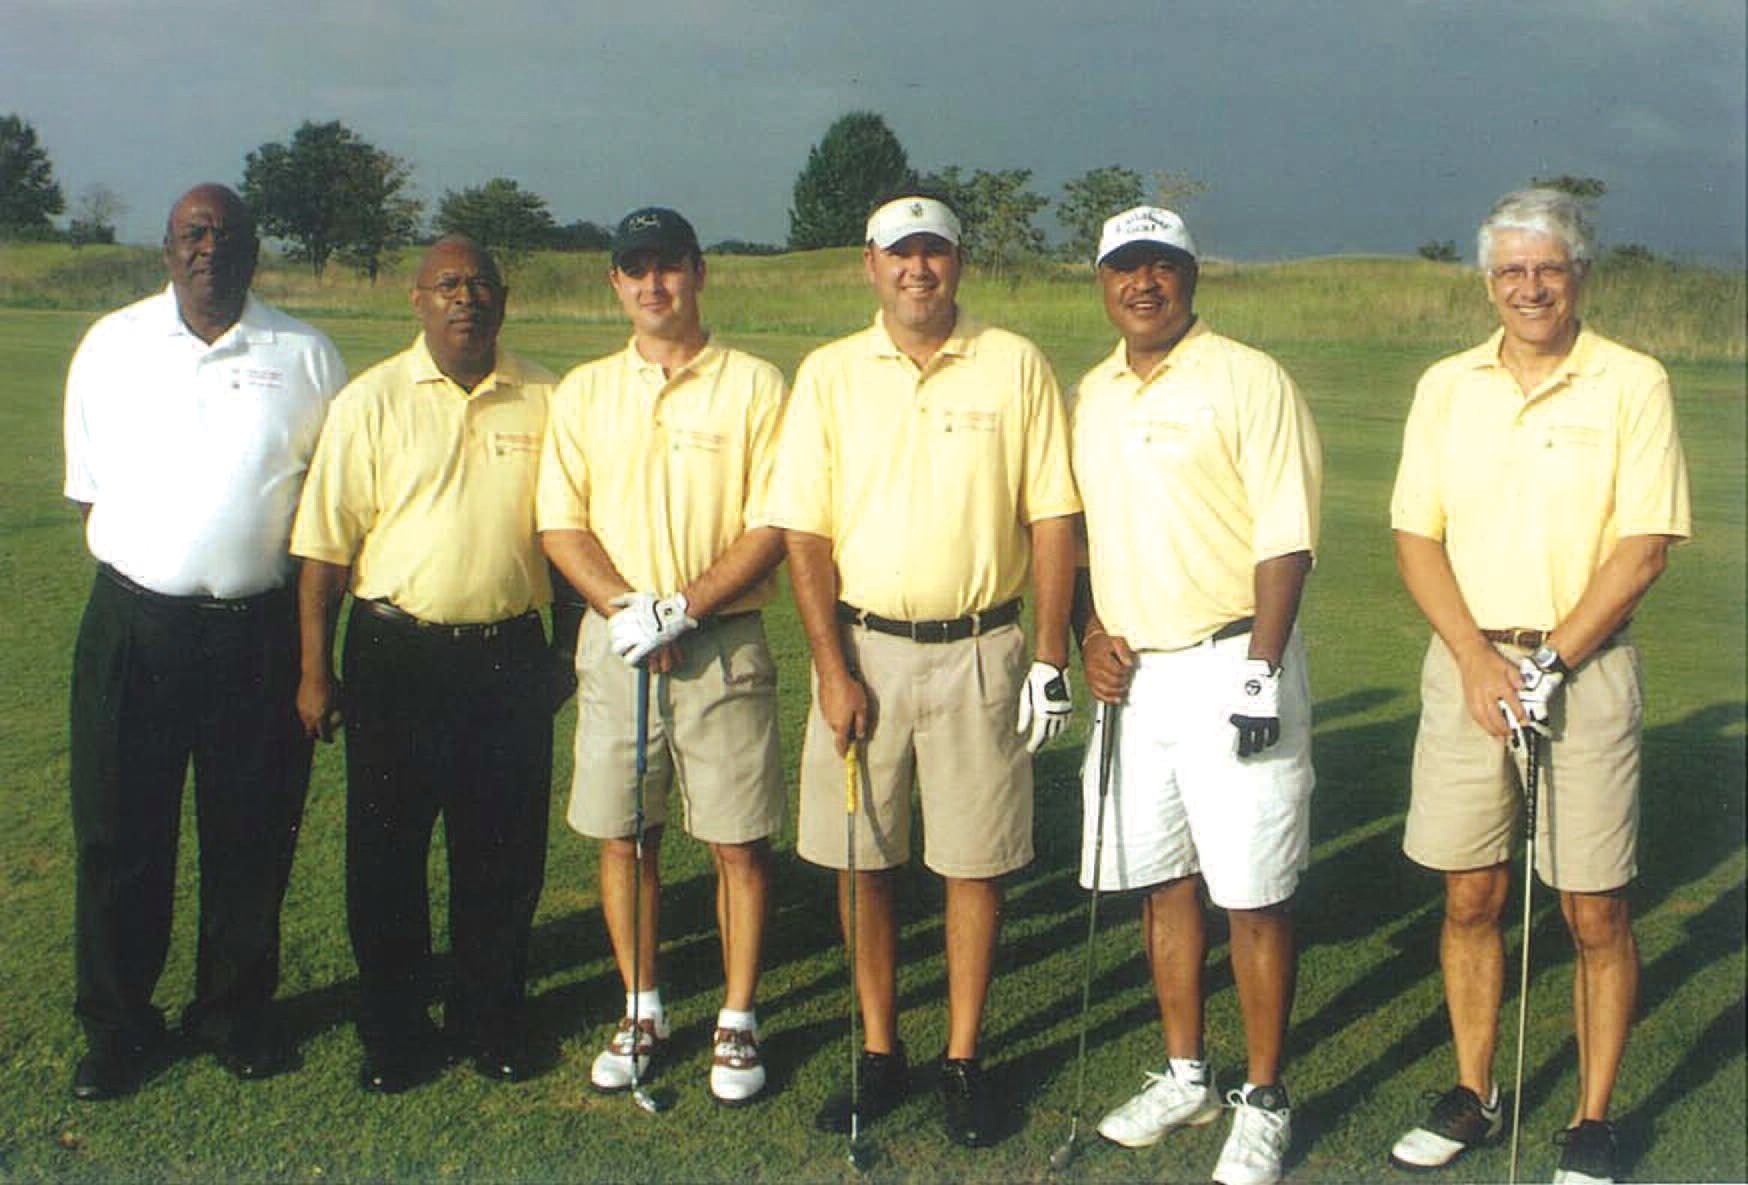 Frankie Thompson Enterprises, Inc. was awarded third place team winners of 2009 Georgia Utility Contractors Association Golf Tournament on September 14, This tournament was established in order to give back to college students that are pursuing construction degree programs as well as other utility contracting career positions. L-R are: Joel Ricks, Frankie Thompson, Greg Young, John Garde, Quinton Standifer, and Craig Zupan.